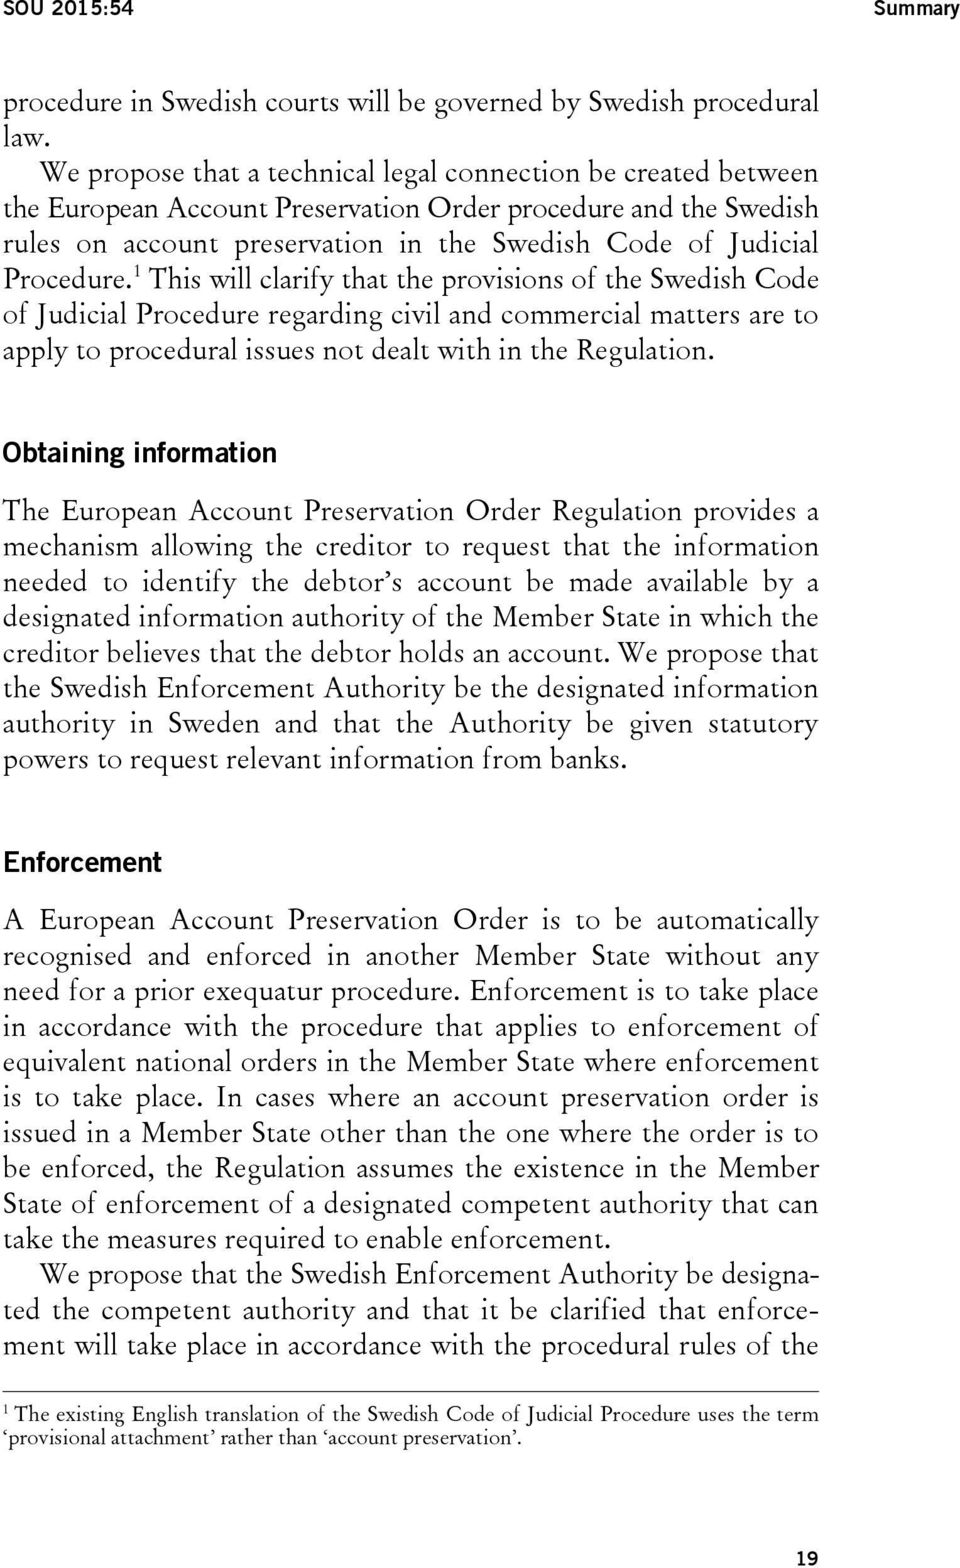 Procedure. 1 This will clarify that the provisions of the Swedish Code of Judicial Procedure regarding civil and commercial matters are to apply to procedural issues not dealt with in the Regulation.